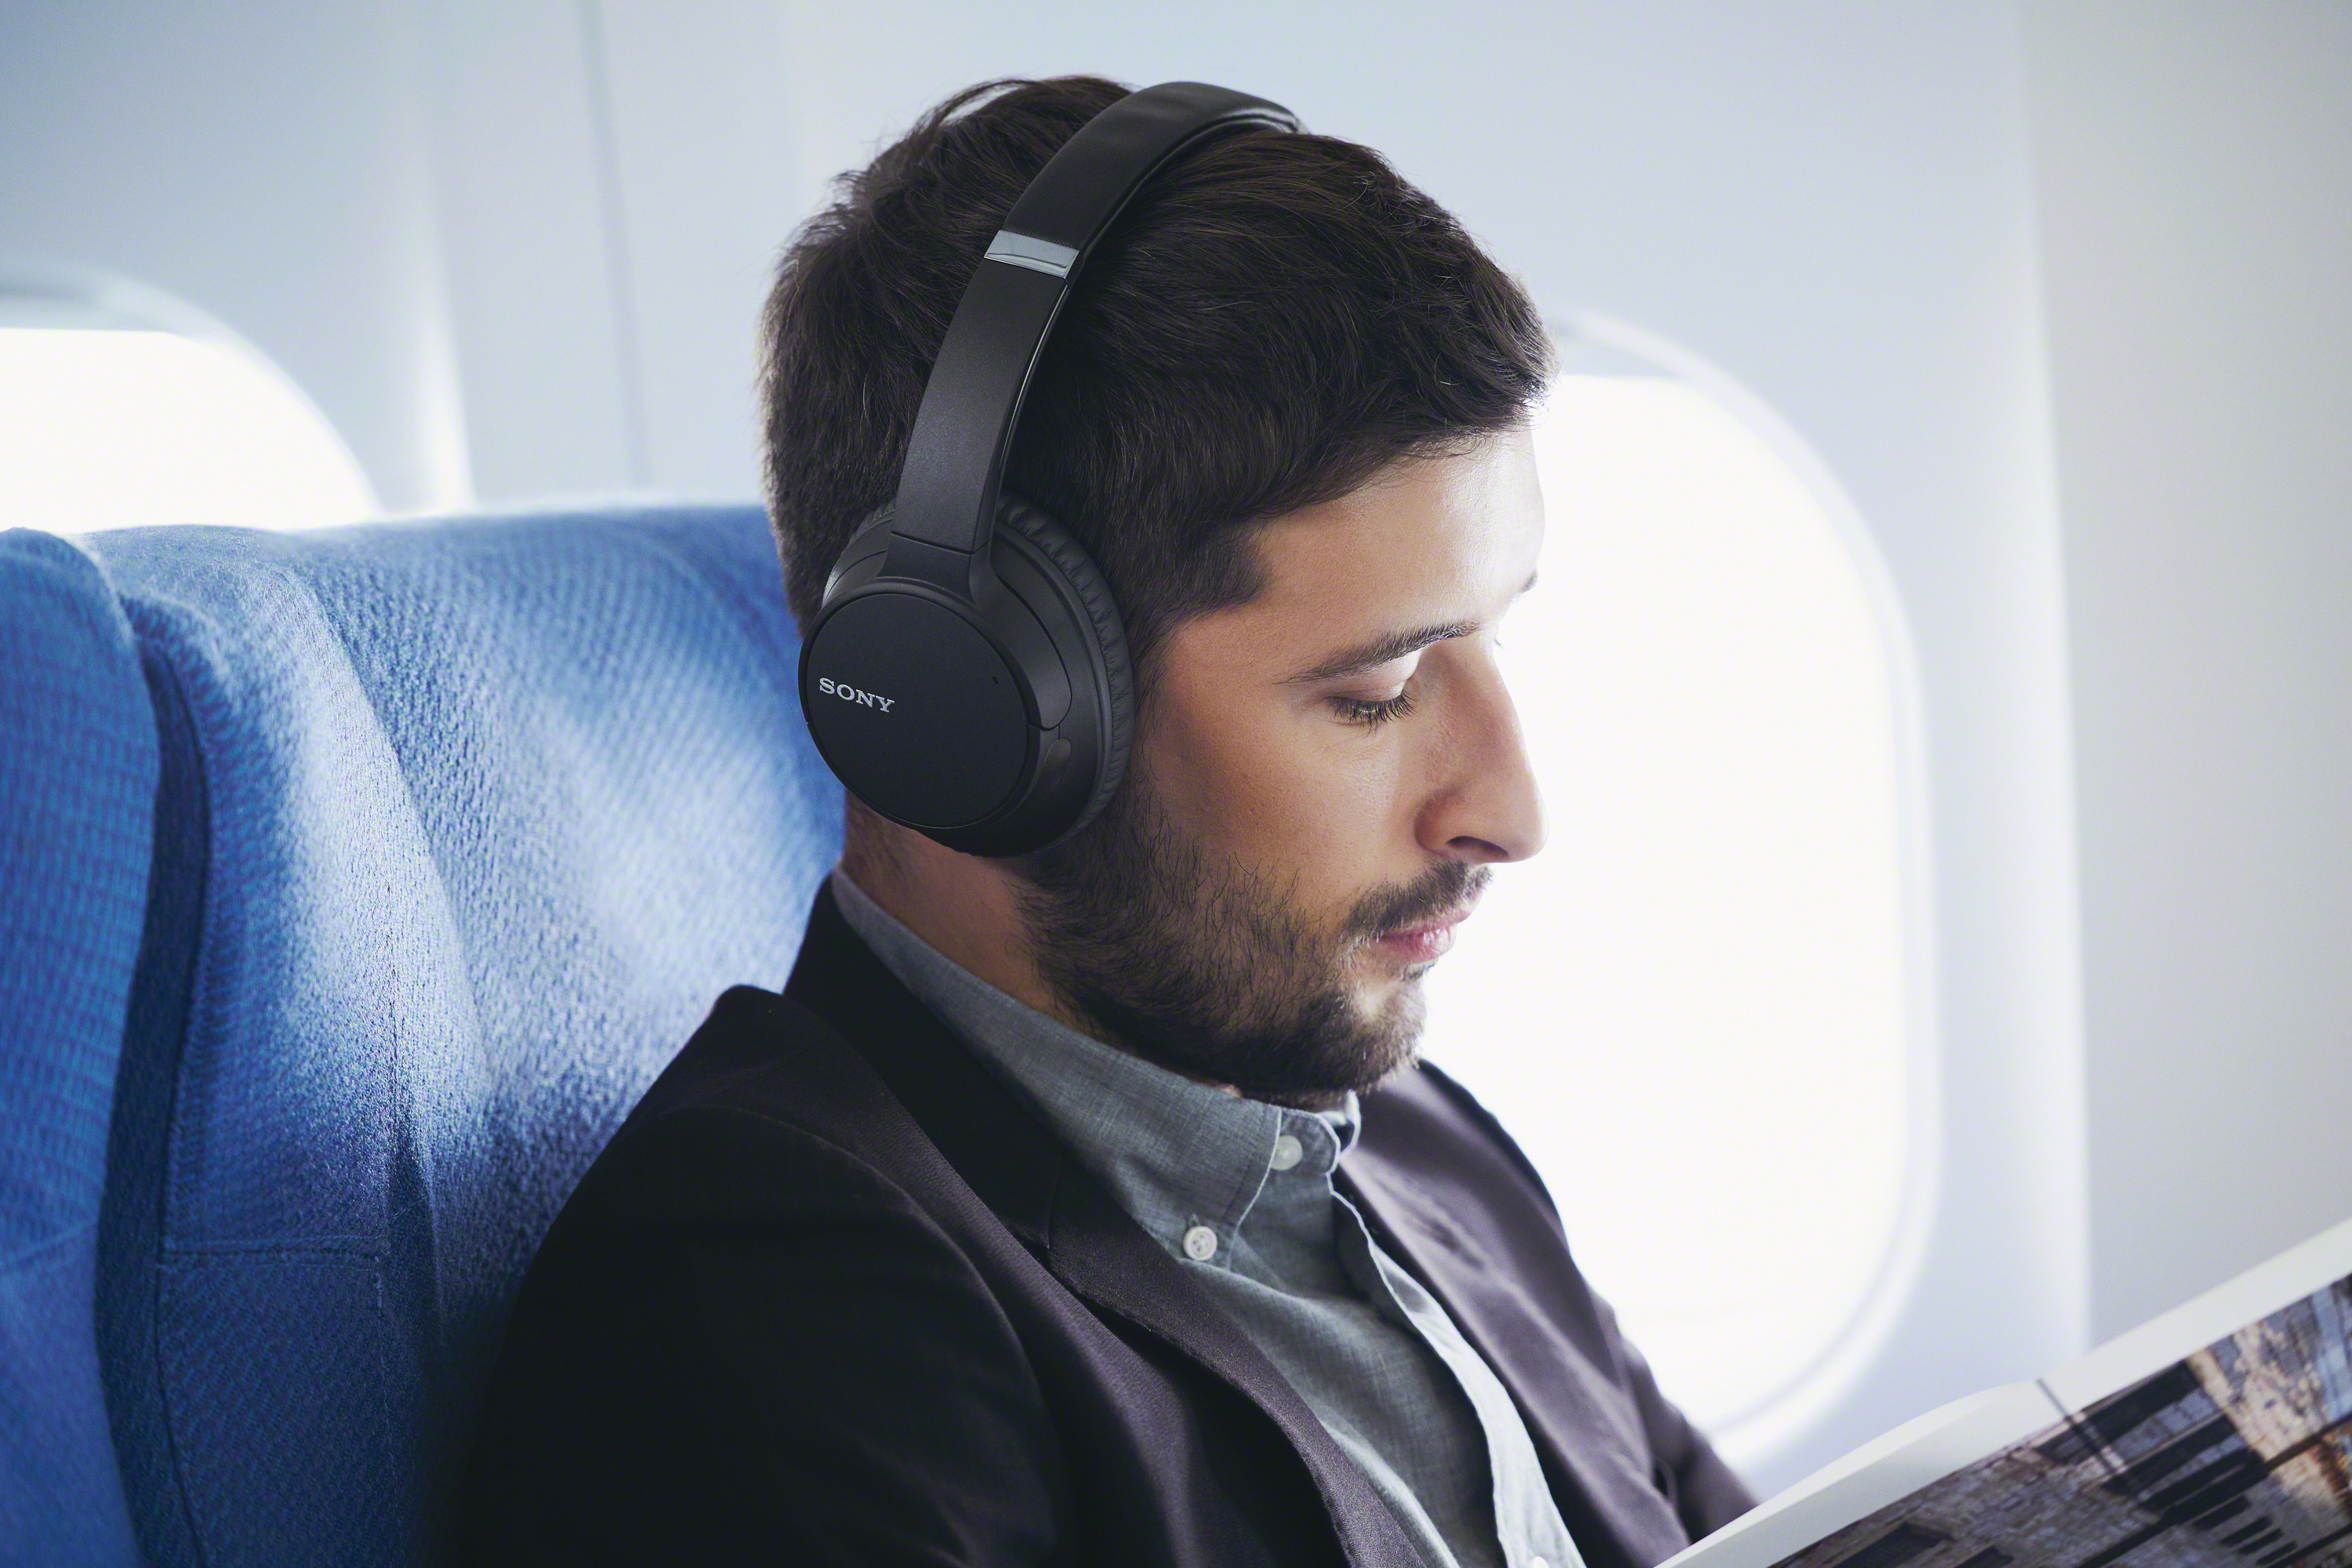 Sony-WH-CH700N-Wireless-Bluetooth-Noise-Canceling-Over-the-Ear-Headphones thumbnail 7